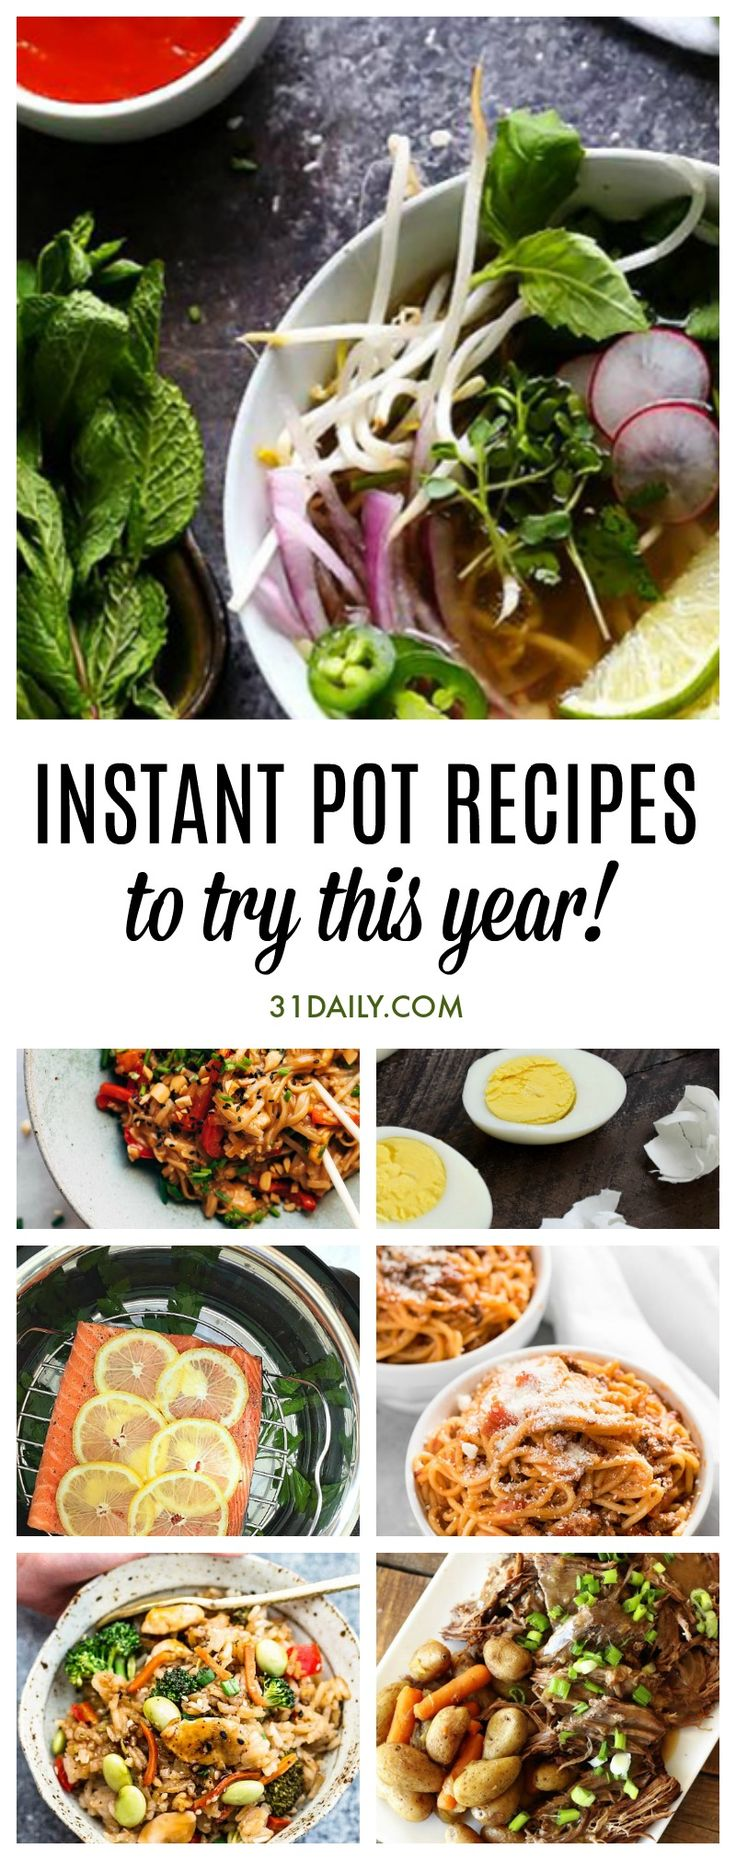 Instant Pot Recipes to Try This Year | 31Daily.com